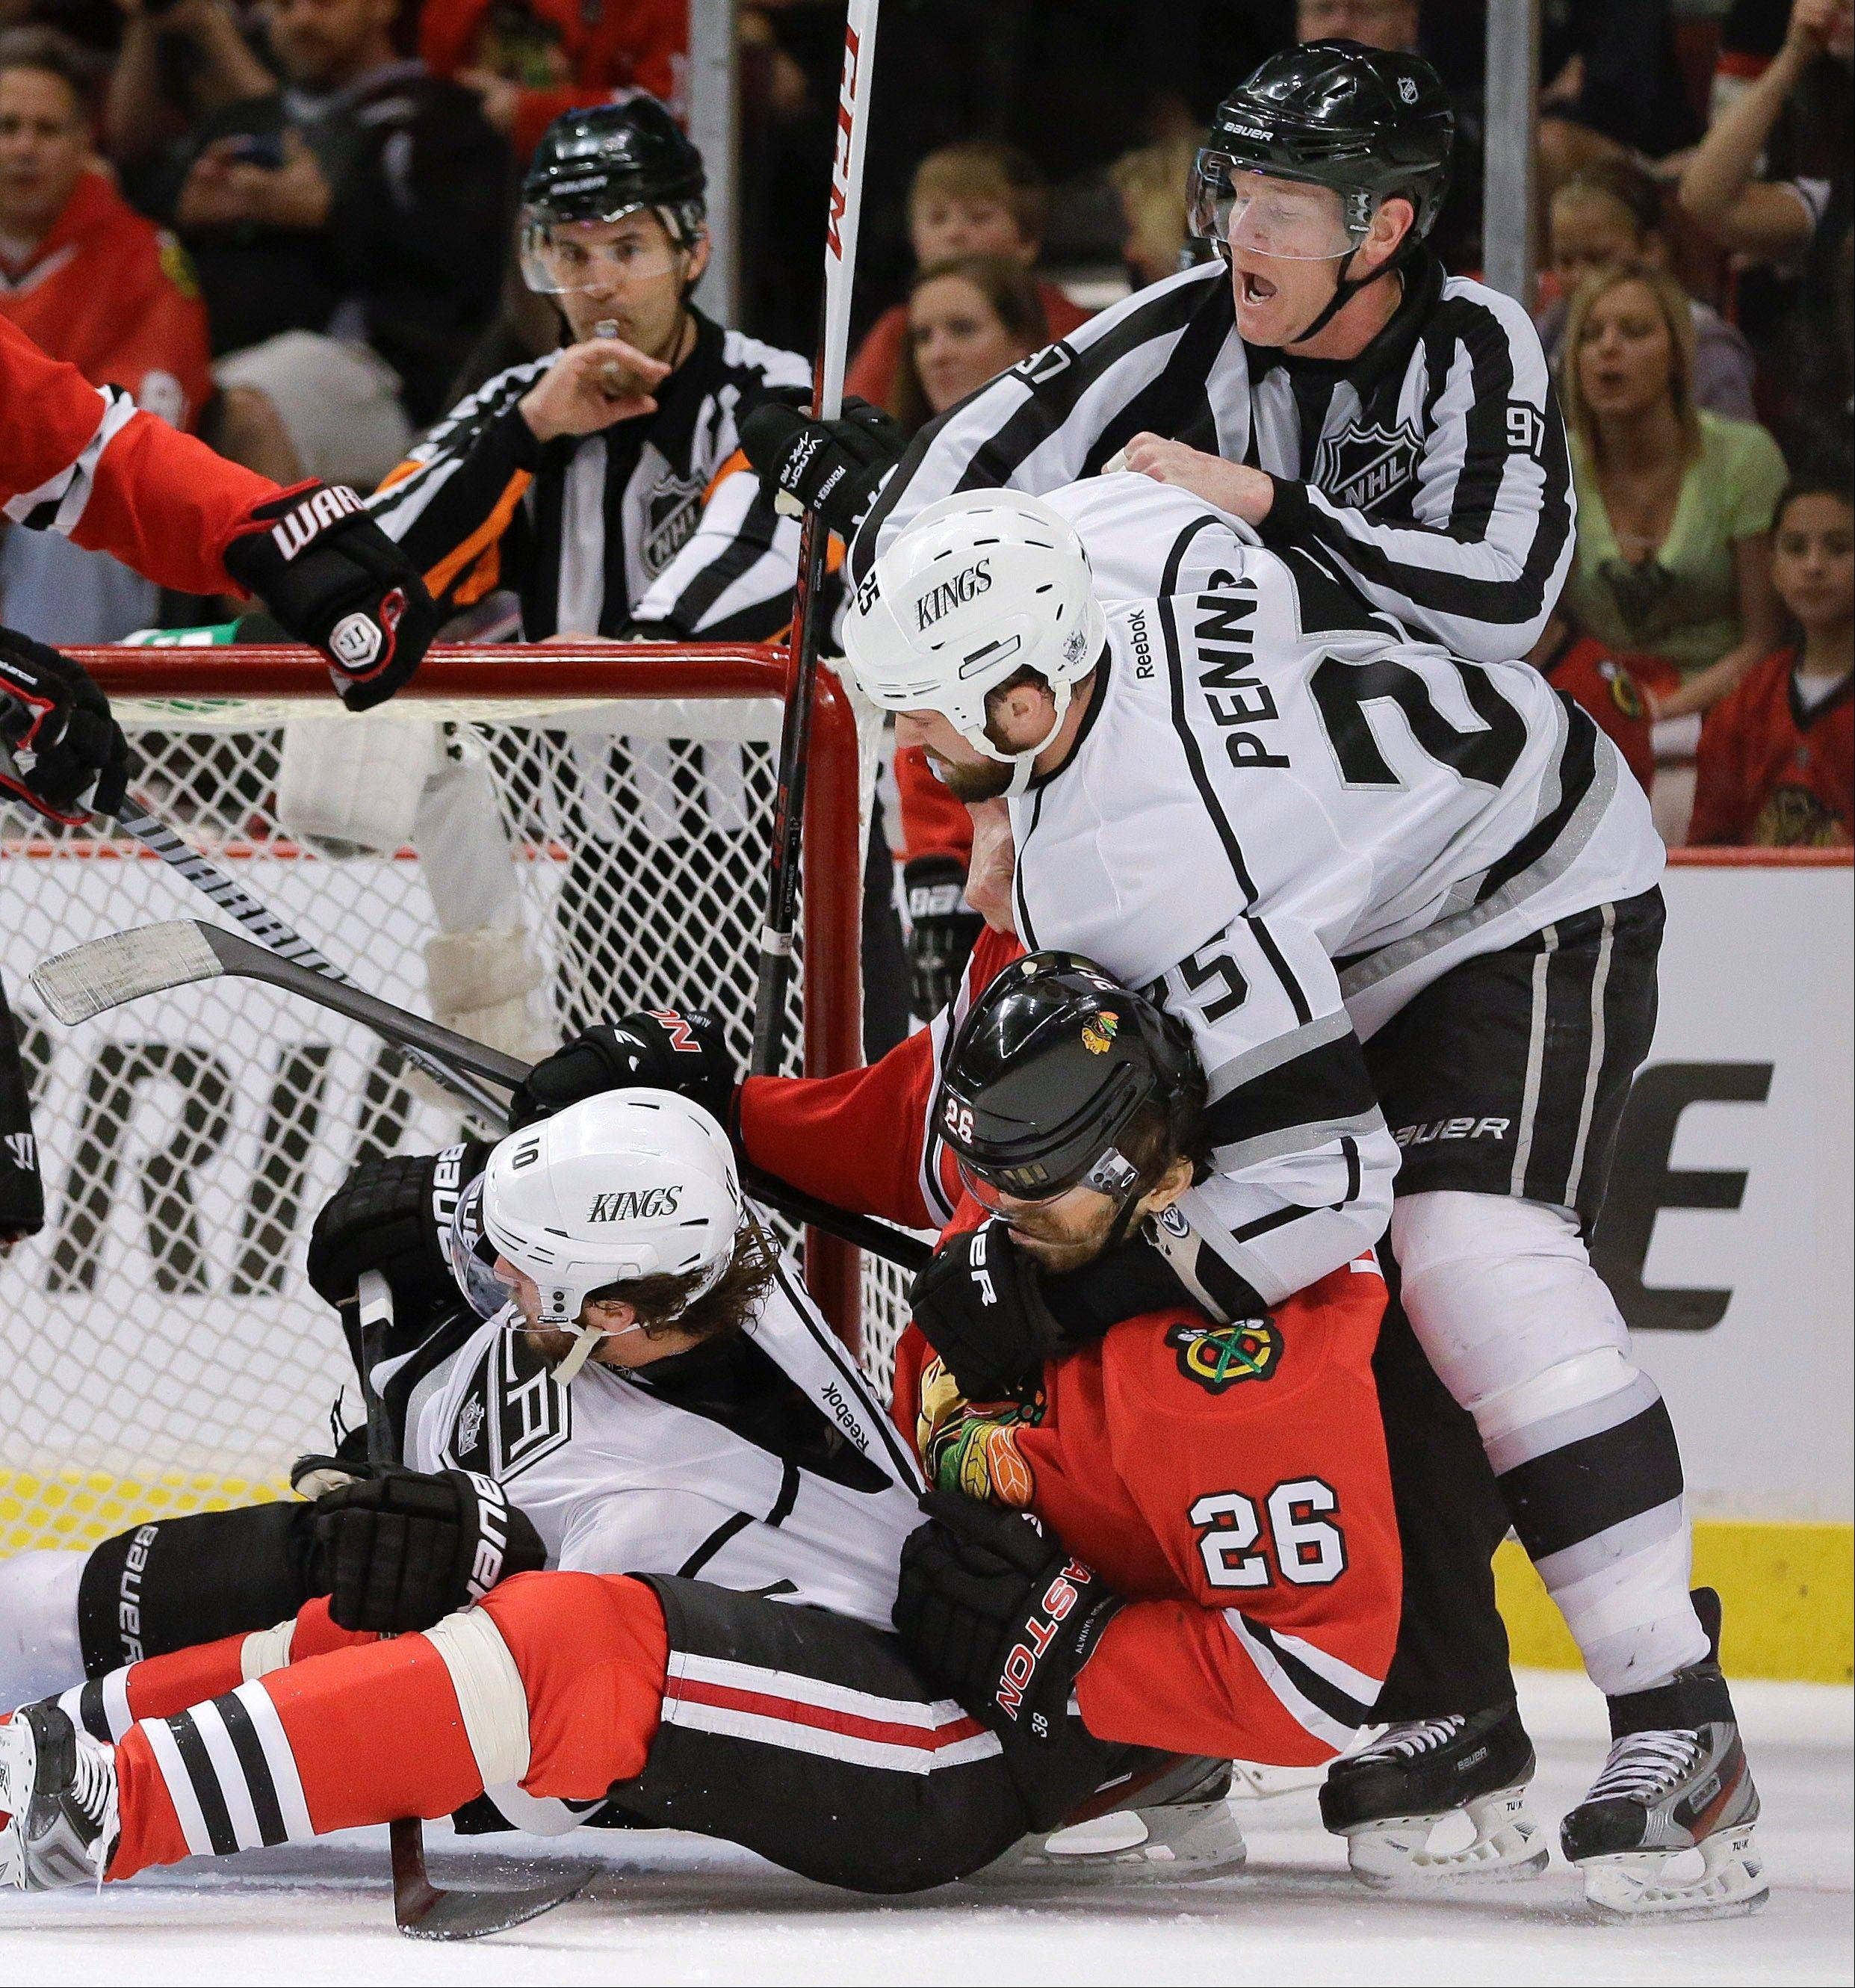 Los Angeles Kings left wing Dustin Penner (25) grabs Chicago Blackhawks center Michal Handzus (26), who pulls down Los Angeles Kings center Mike Richards (10) during a fight in the first period of Game 1 of the NHL hockey Stanley Cup Western Conference finals Saturday in Chicago. Richards has been pulled from the Kings' lineup for Game 3.